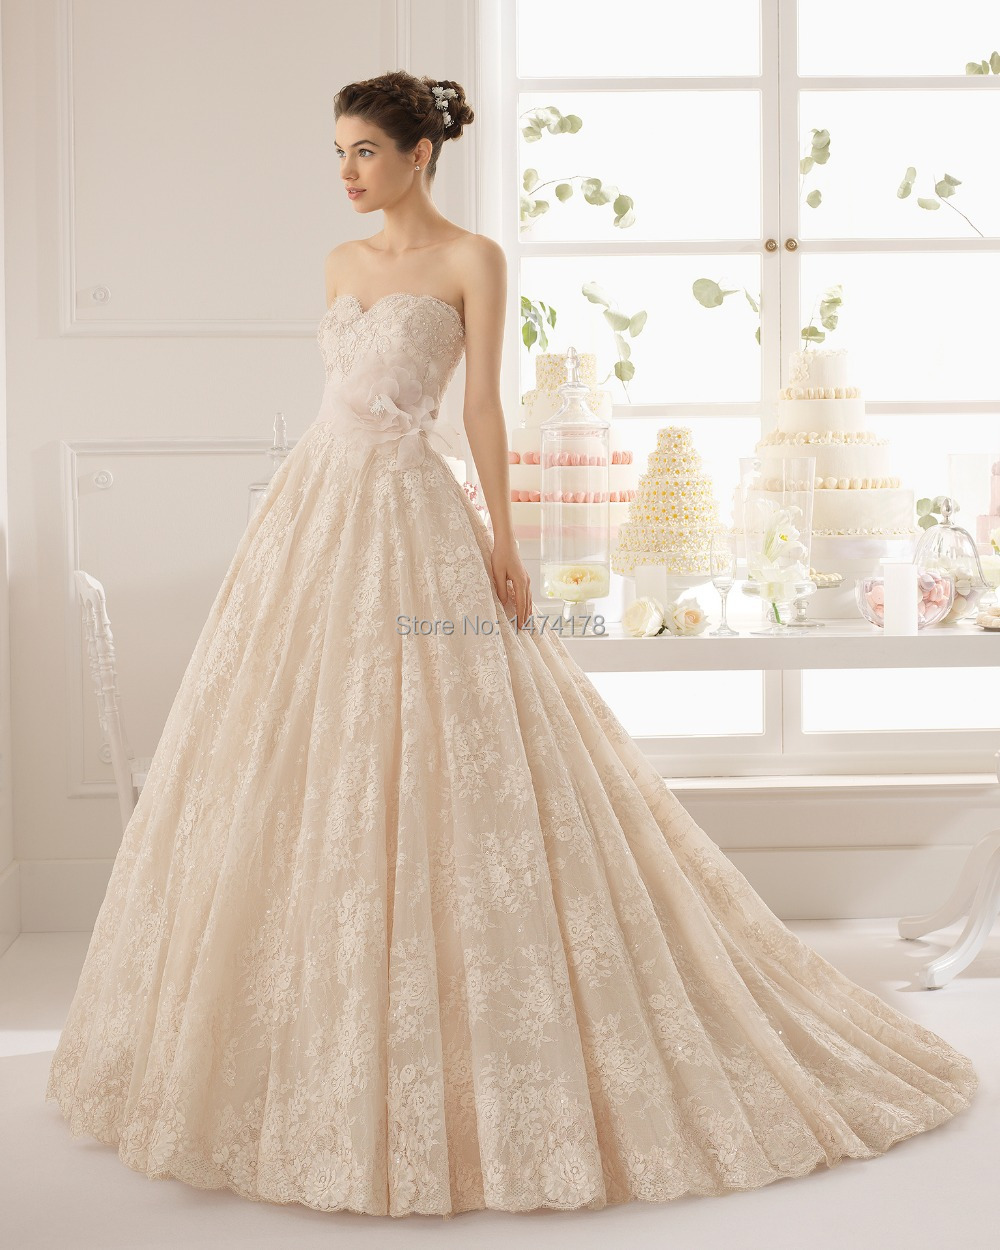 Wedding Dresses Sweetheart Neckline Princess Lace - Wedding Dress ...